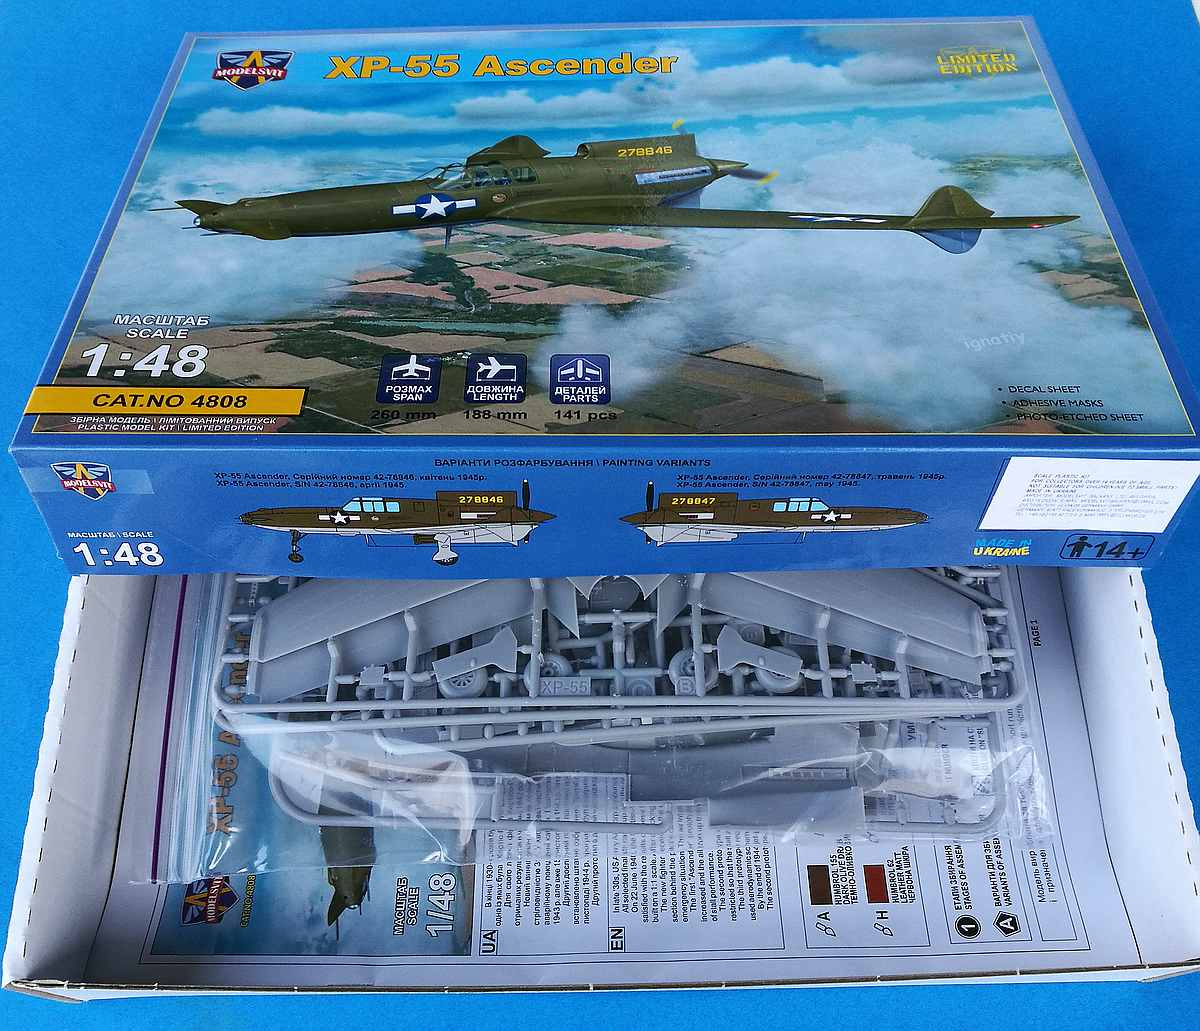 Modelsvit-4808-Curtiss-XP-55-Ascender-15 Curtiss XP-55 Ascender in 1:48 von Modelsvit # 4808